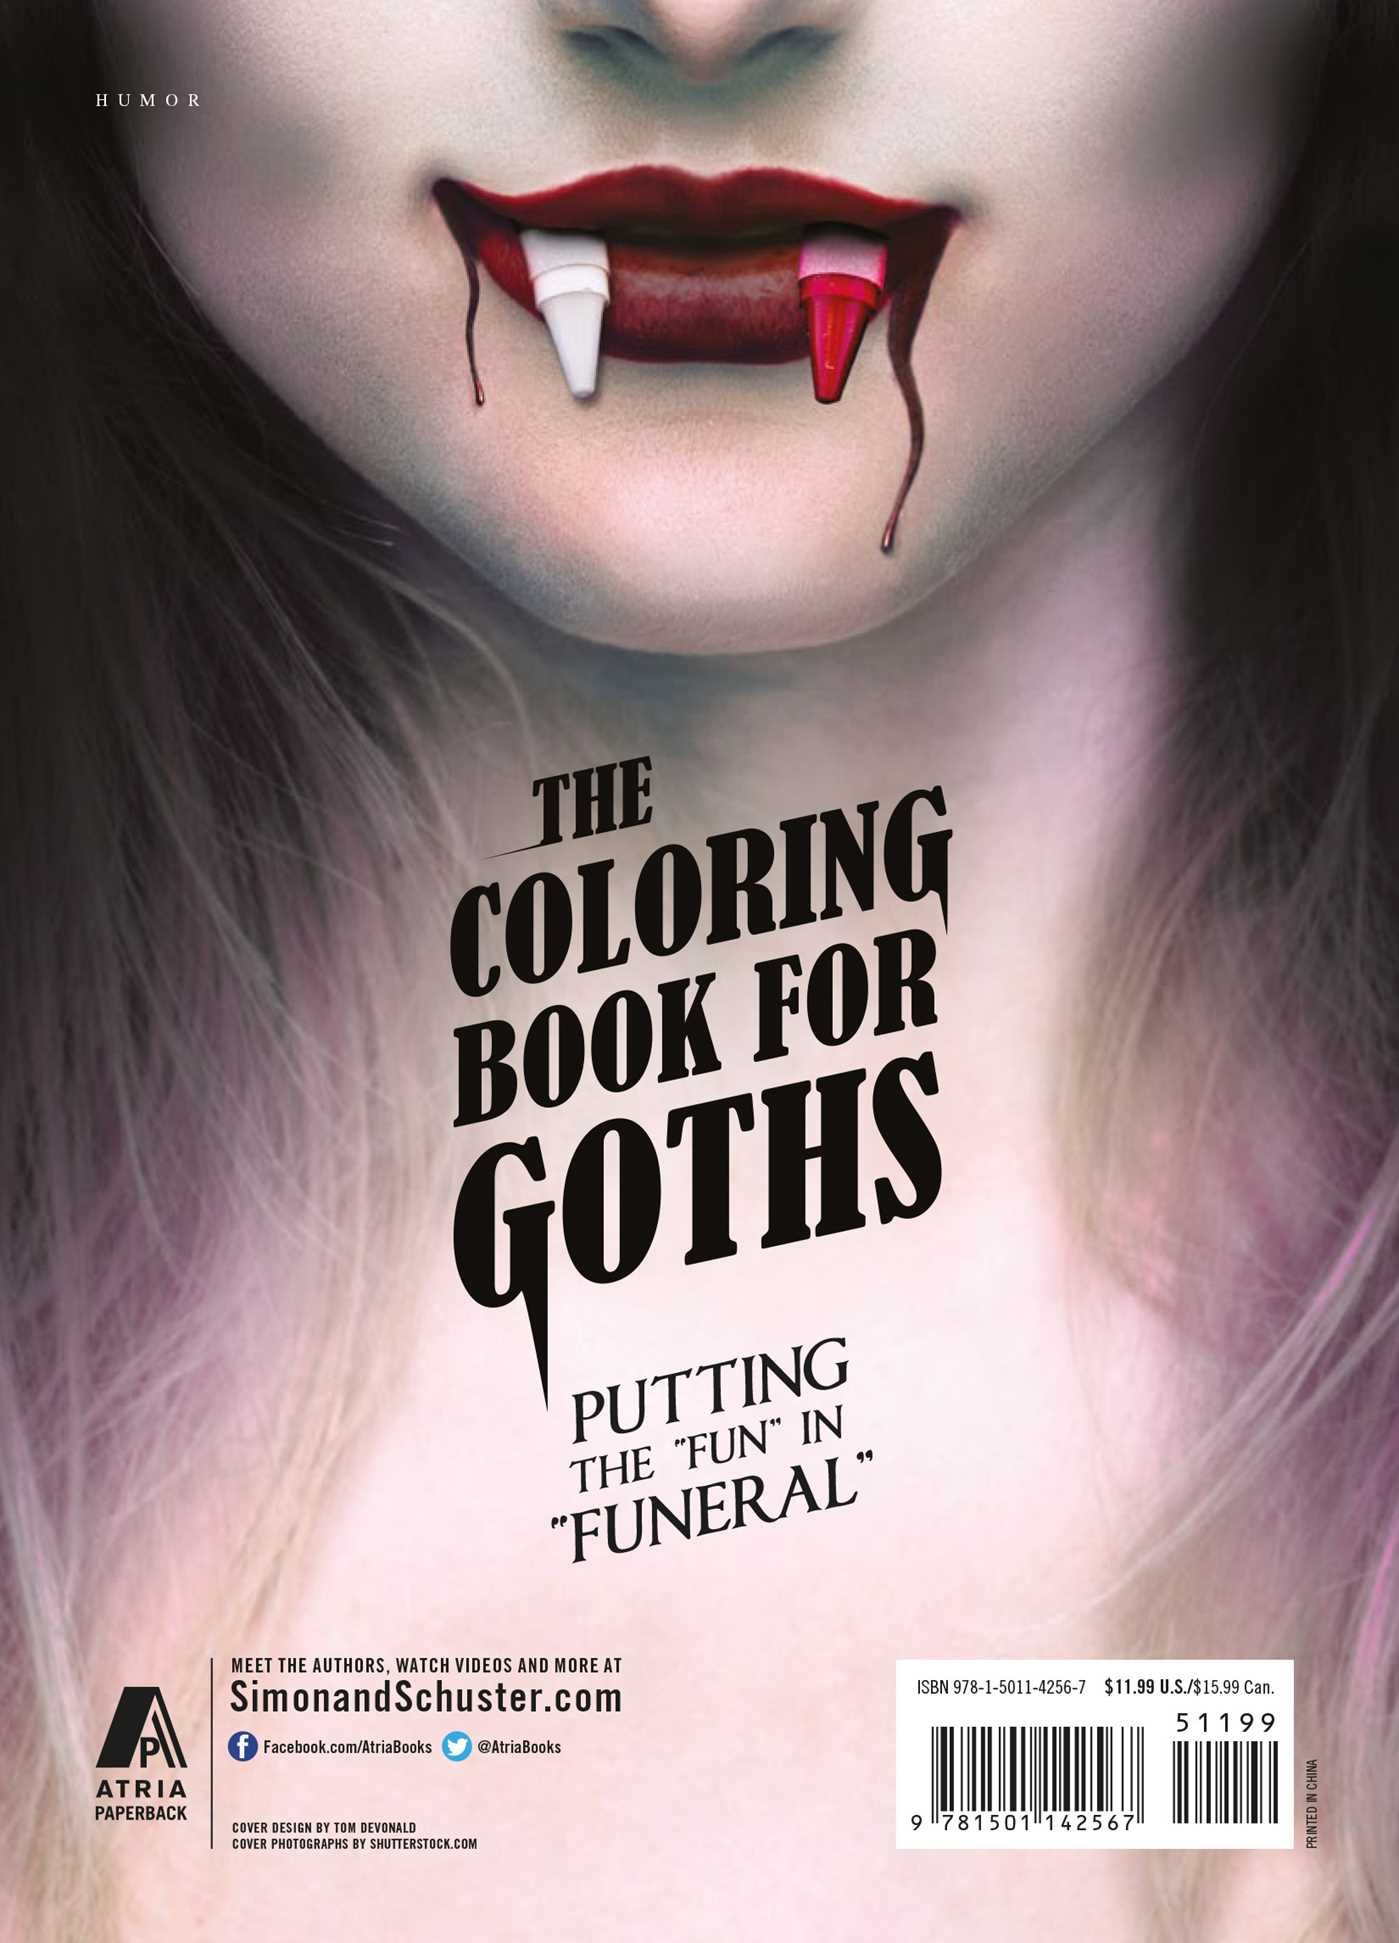 The coloring book vinyl - Amazon Com The Coloring Book For Goths The World S Most Depressing Book 9781501142567 Tom Devonald Books